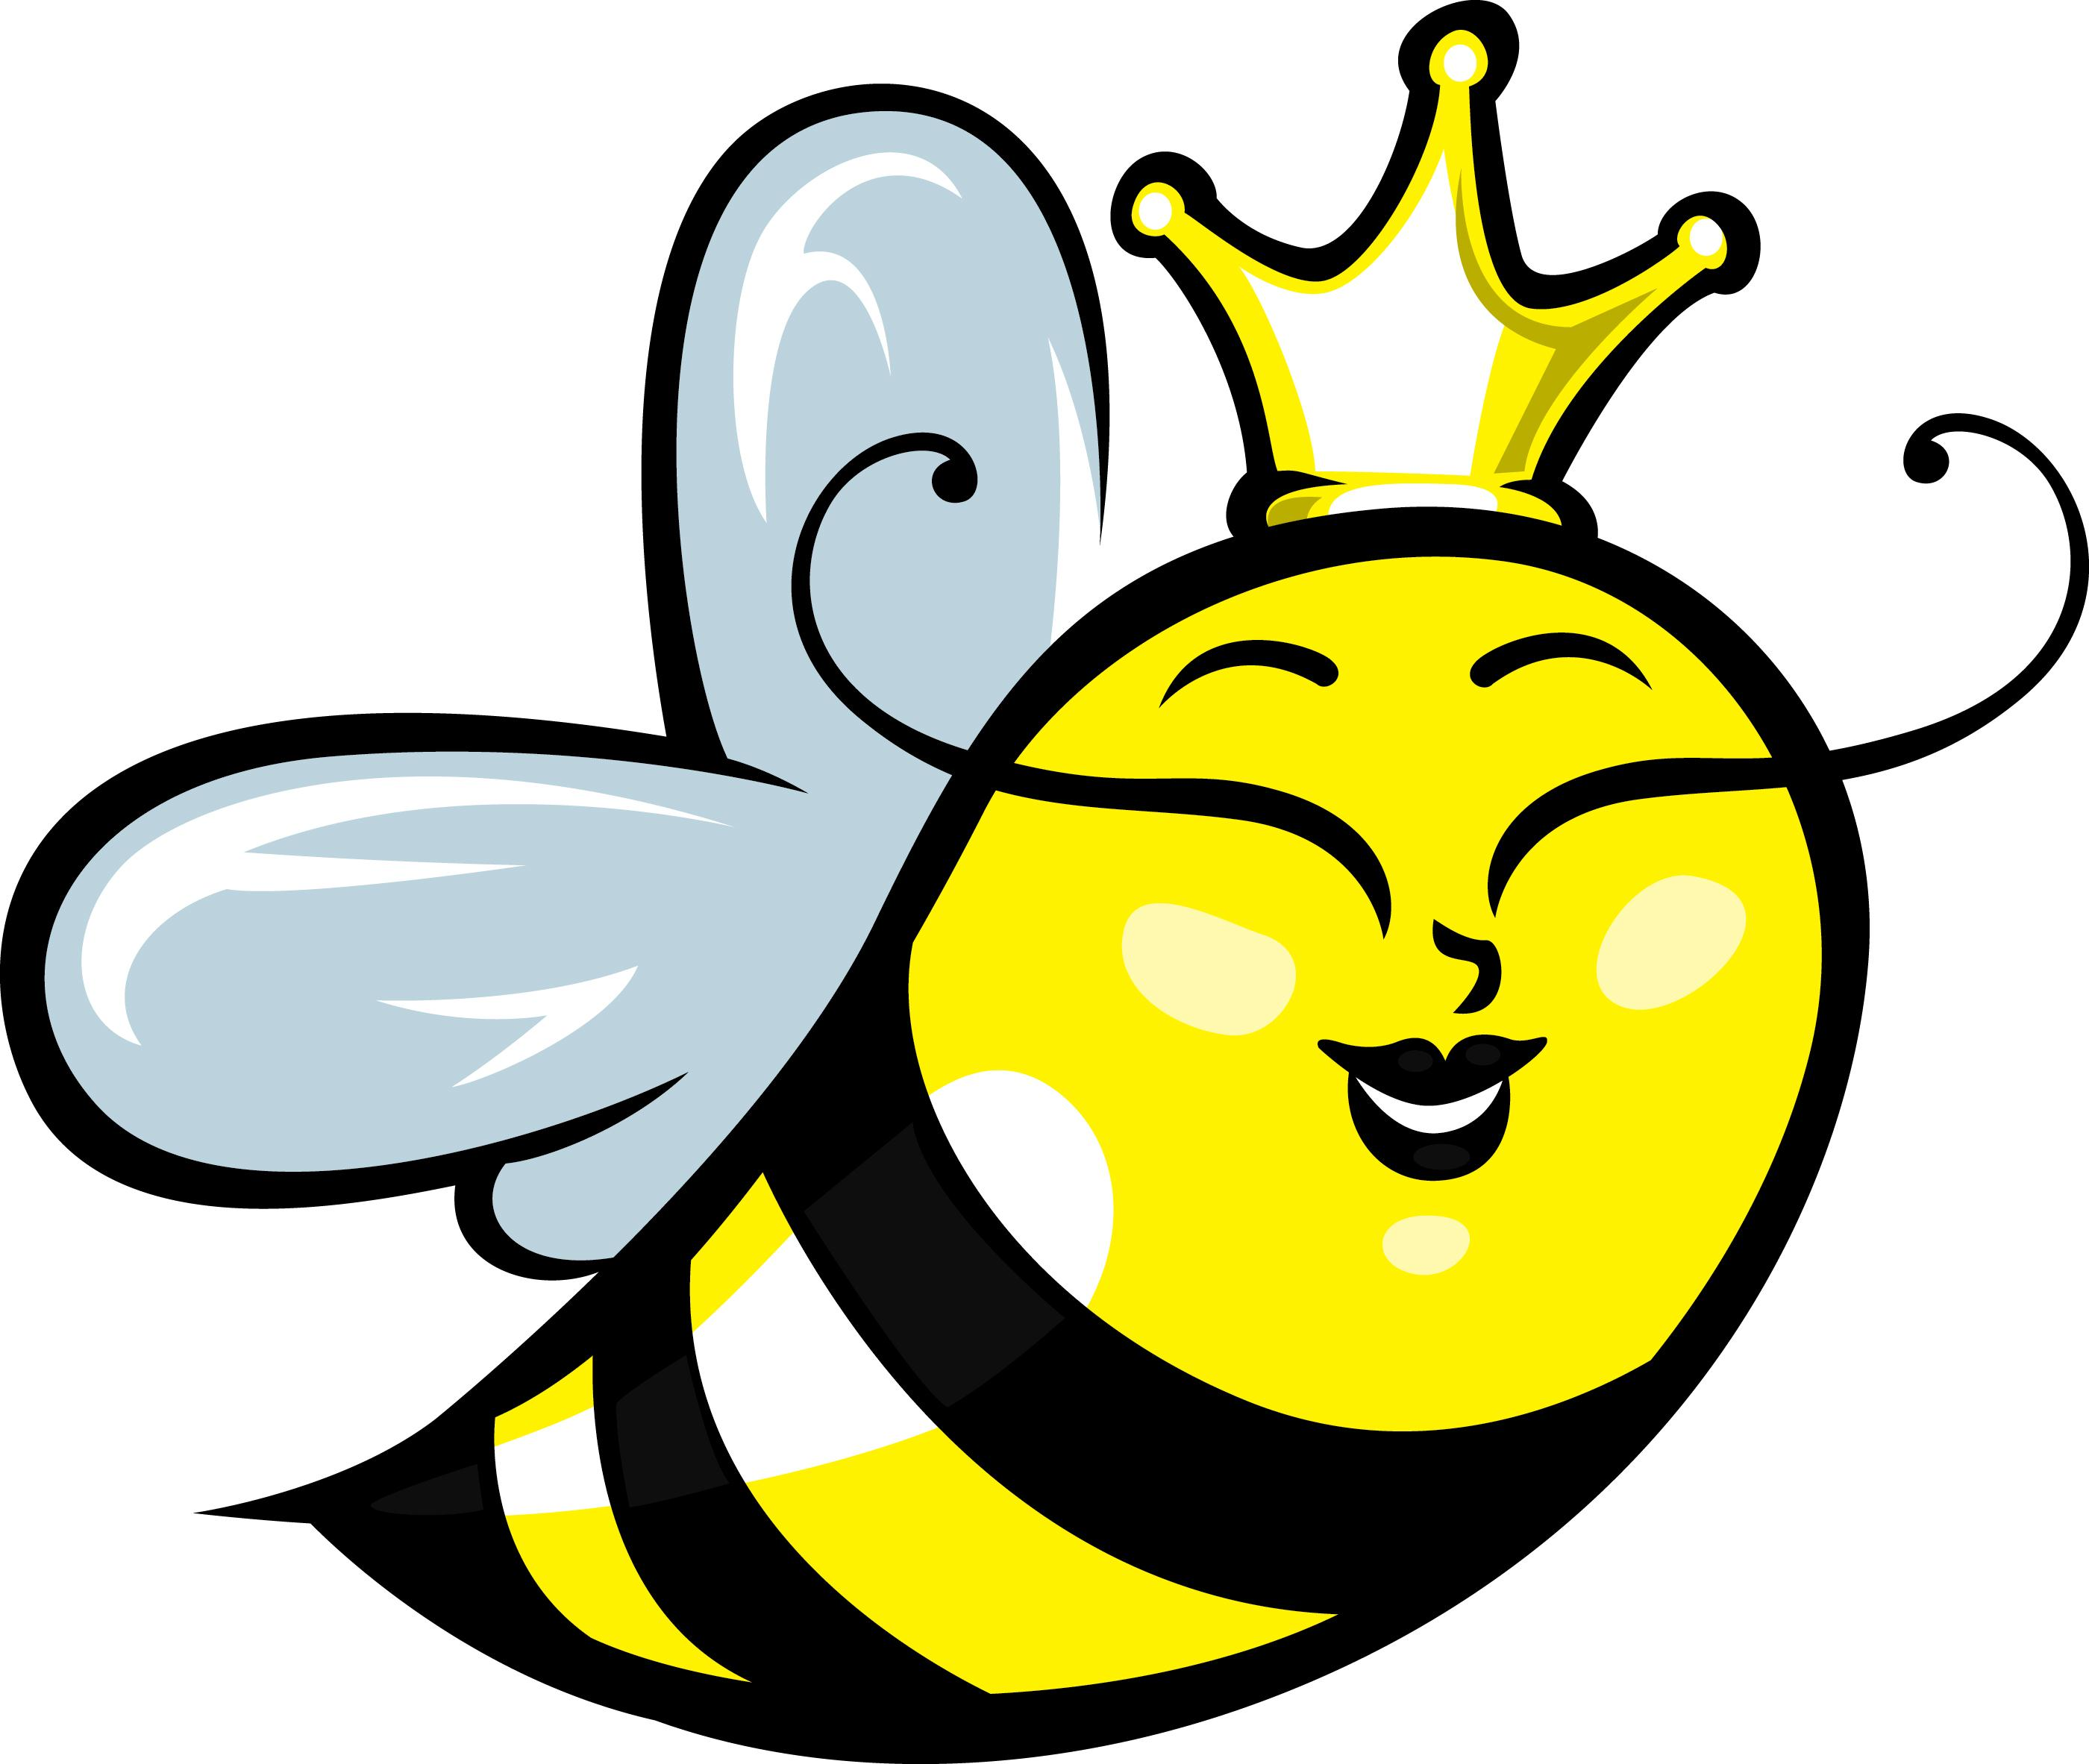 Girly bumble bee clipart.